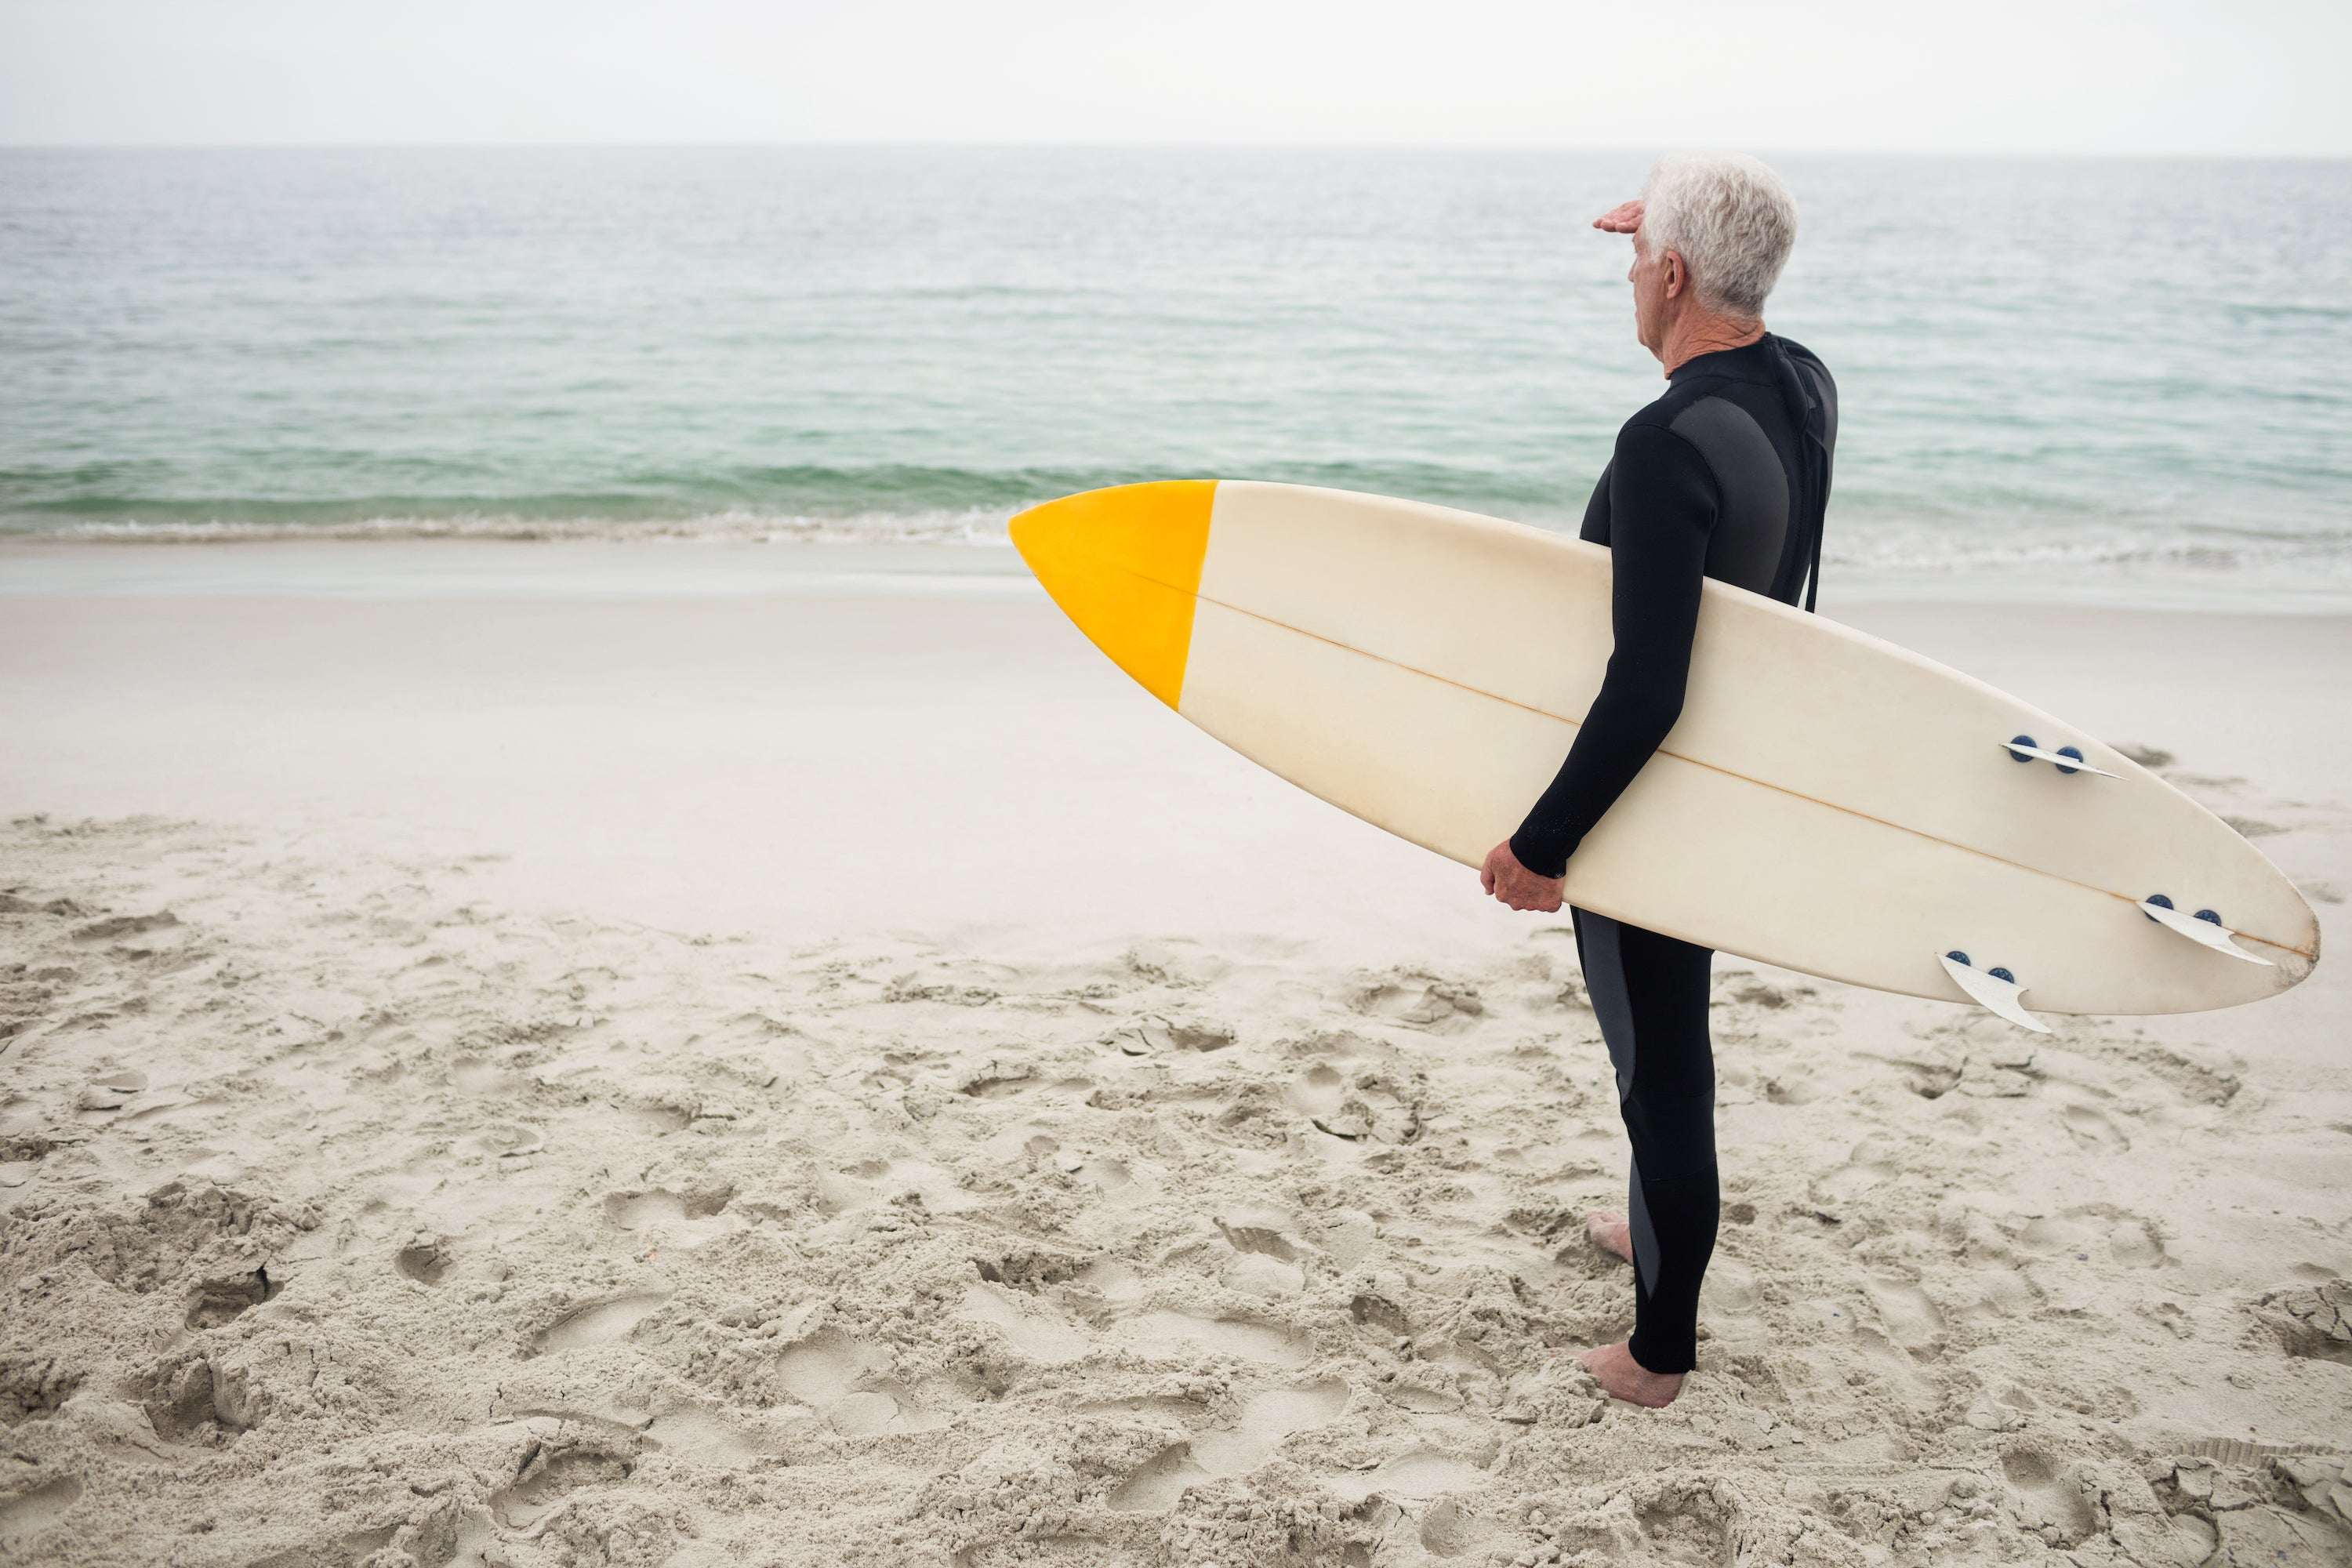 gray-haired man wearing wetsuit holding surfboard looking out to ocean